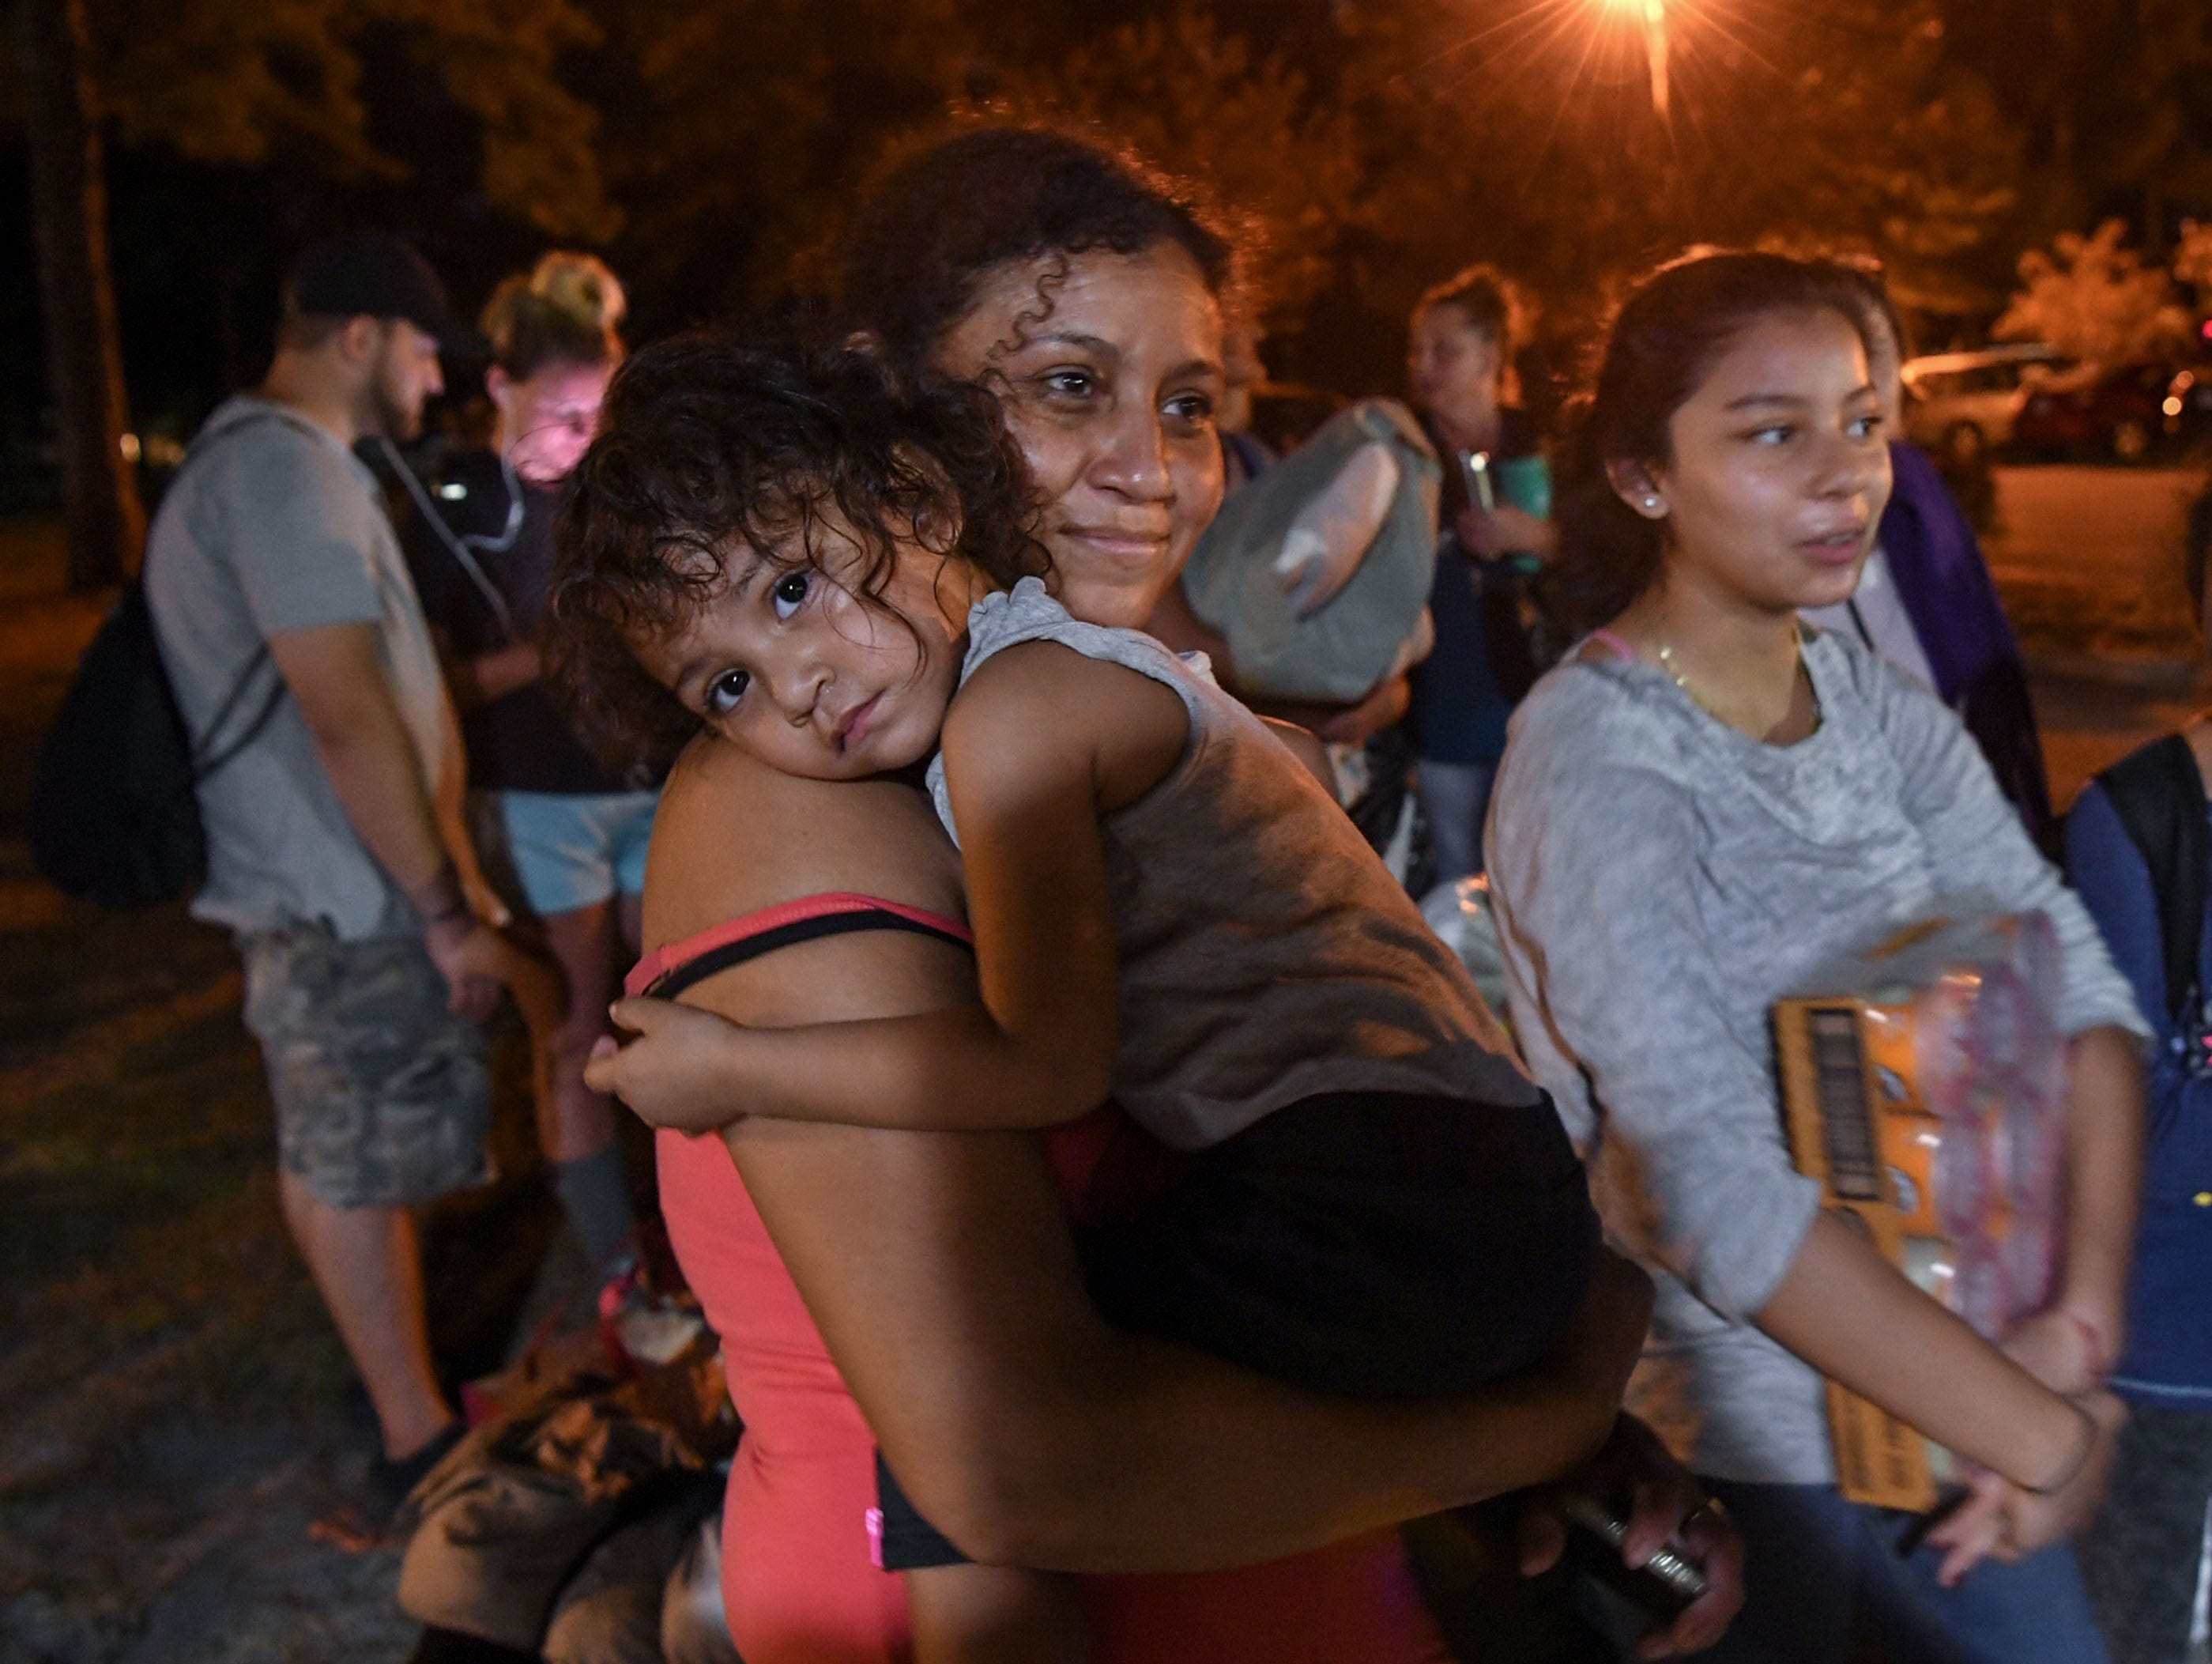 Melba Varbona, holds her daughter Joseline Merlos, right, of Wilmington near her family waiting to check in the New Hanover County emergency shelter at Trask Middle School in Wilmington, North Carolina on Tuesday, September 11, 2018. Hurricane Florence is expected to make landfall in Wilmington Thursday night. (Ken Ruinard / Greenville News / Gannett USA Today Network / 2018 )